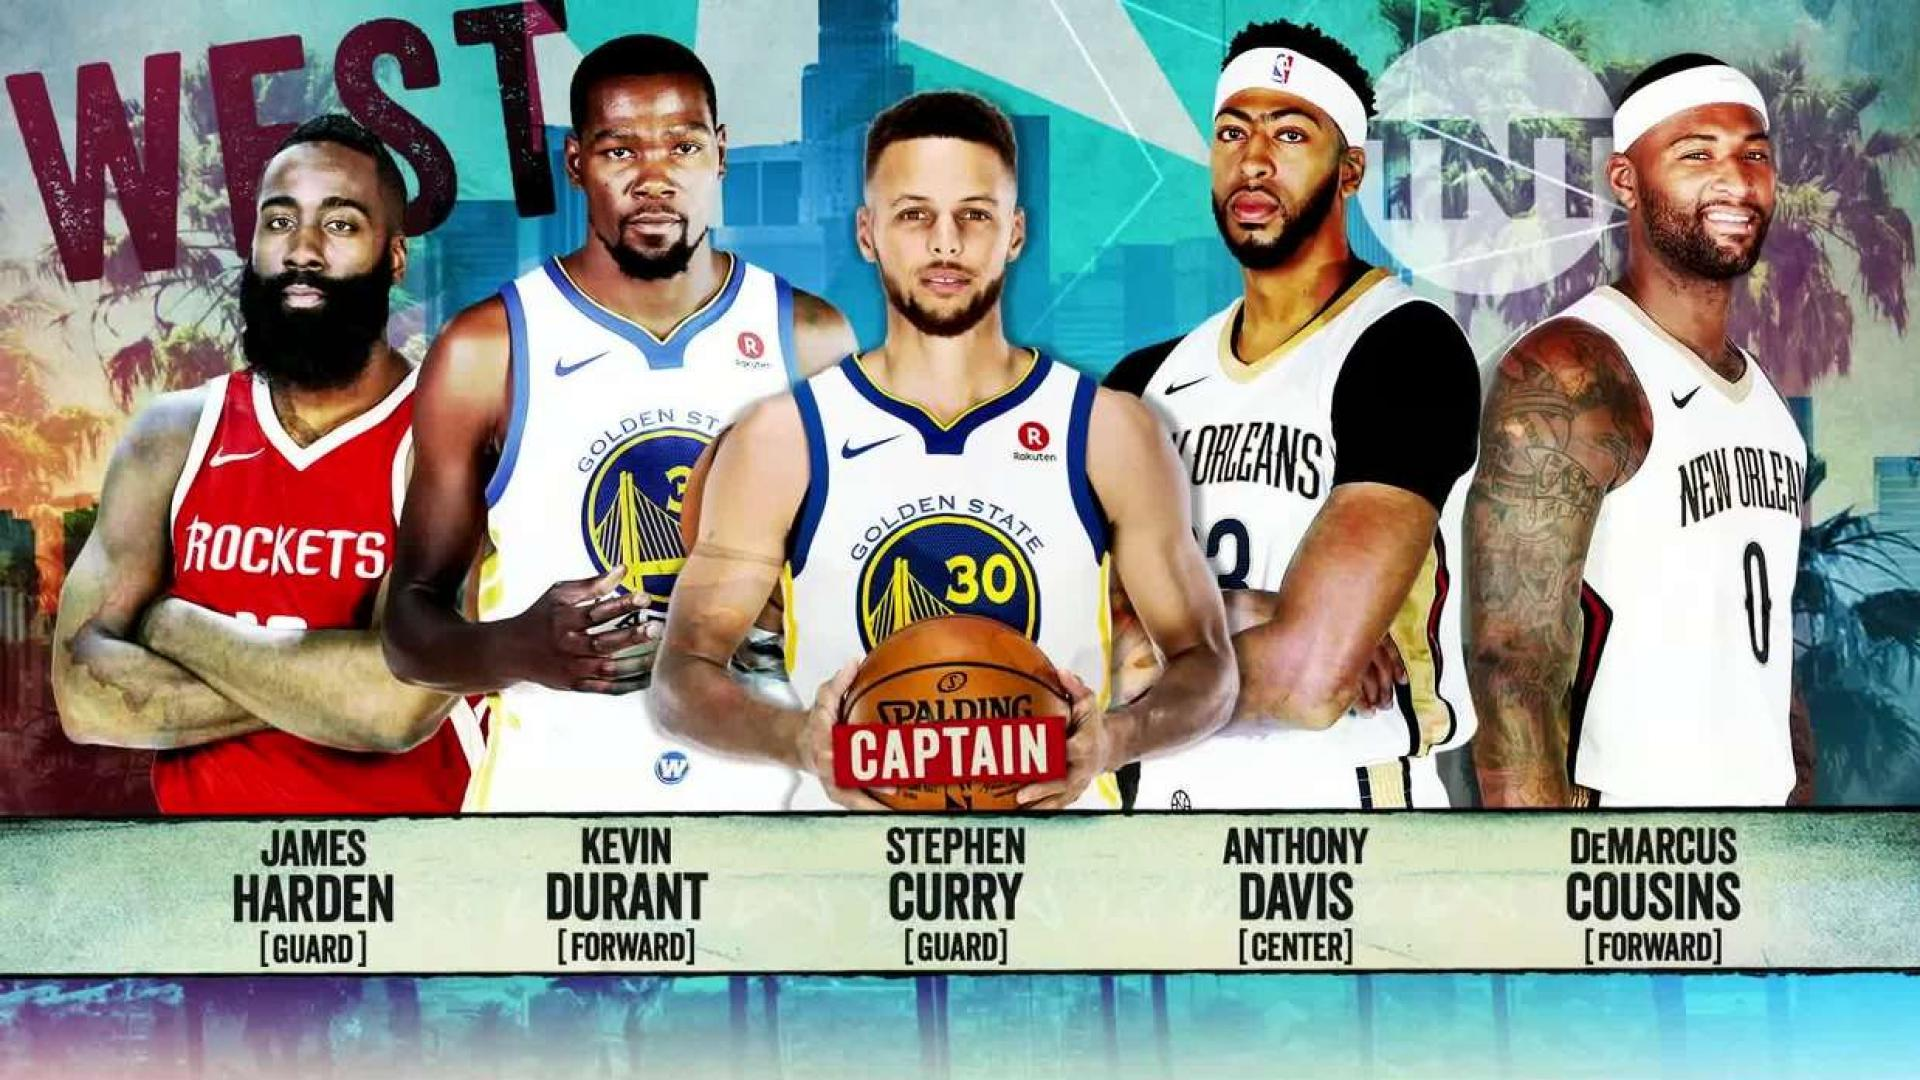 LeBron James, Steph Curry named captains as All-Star starters are revealed | NBA.com